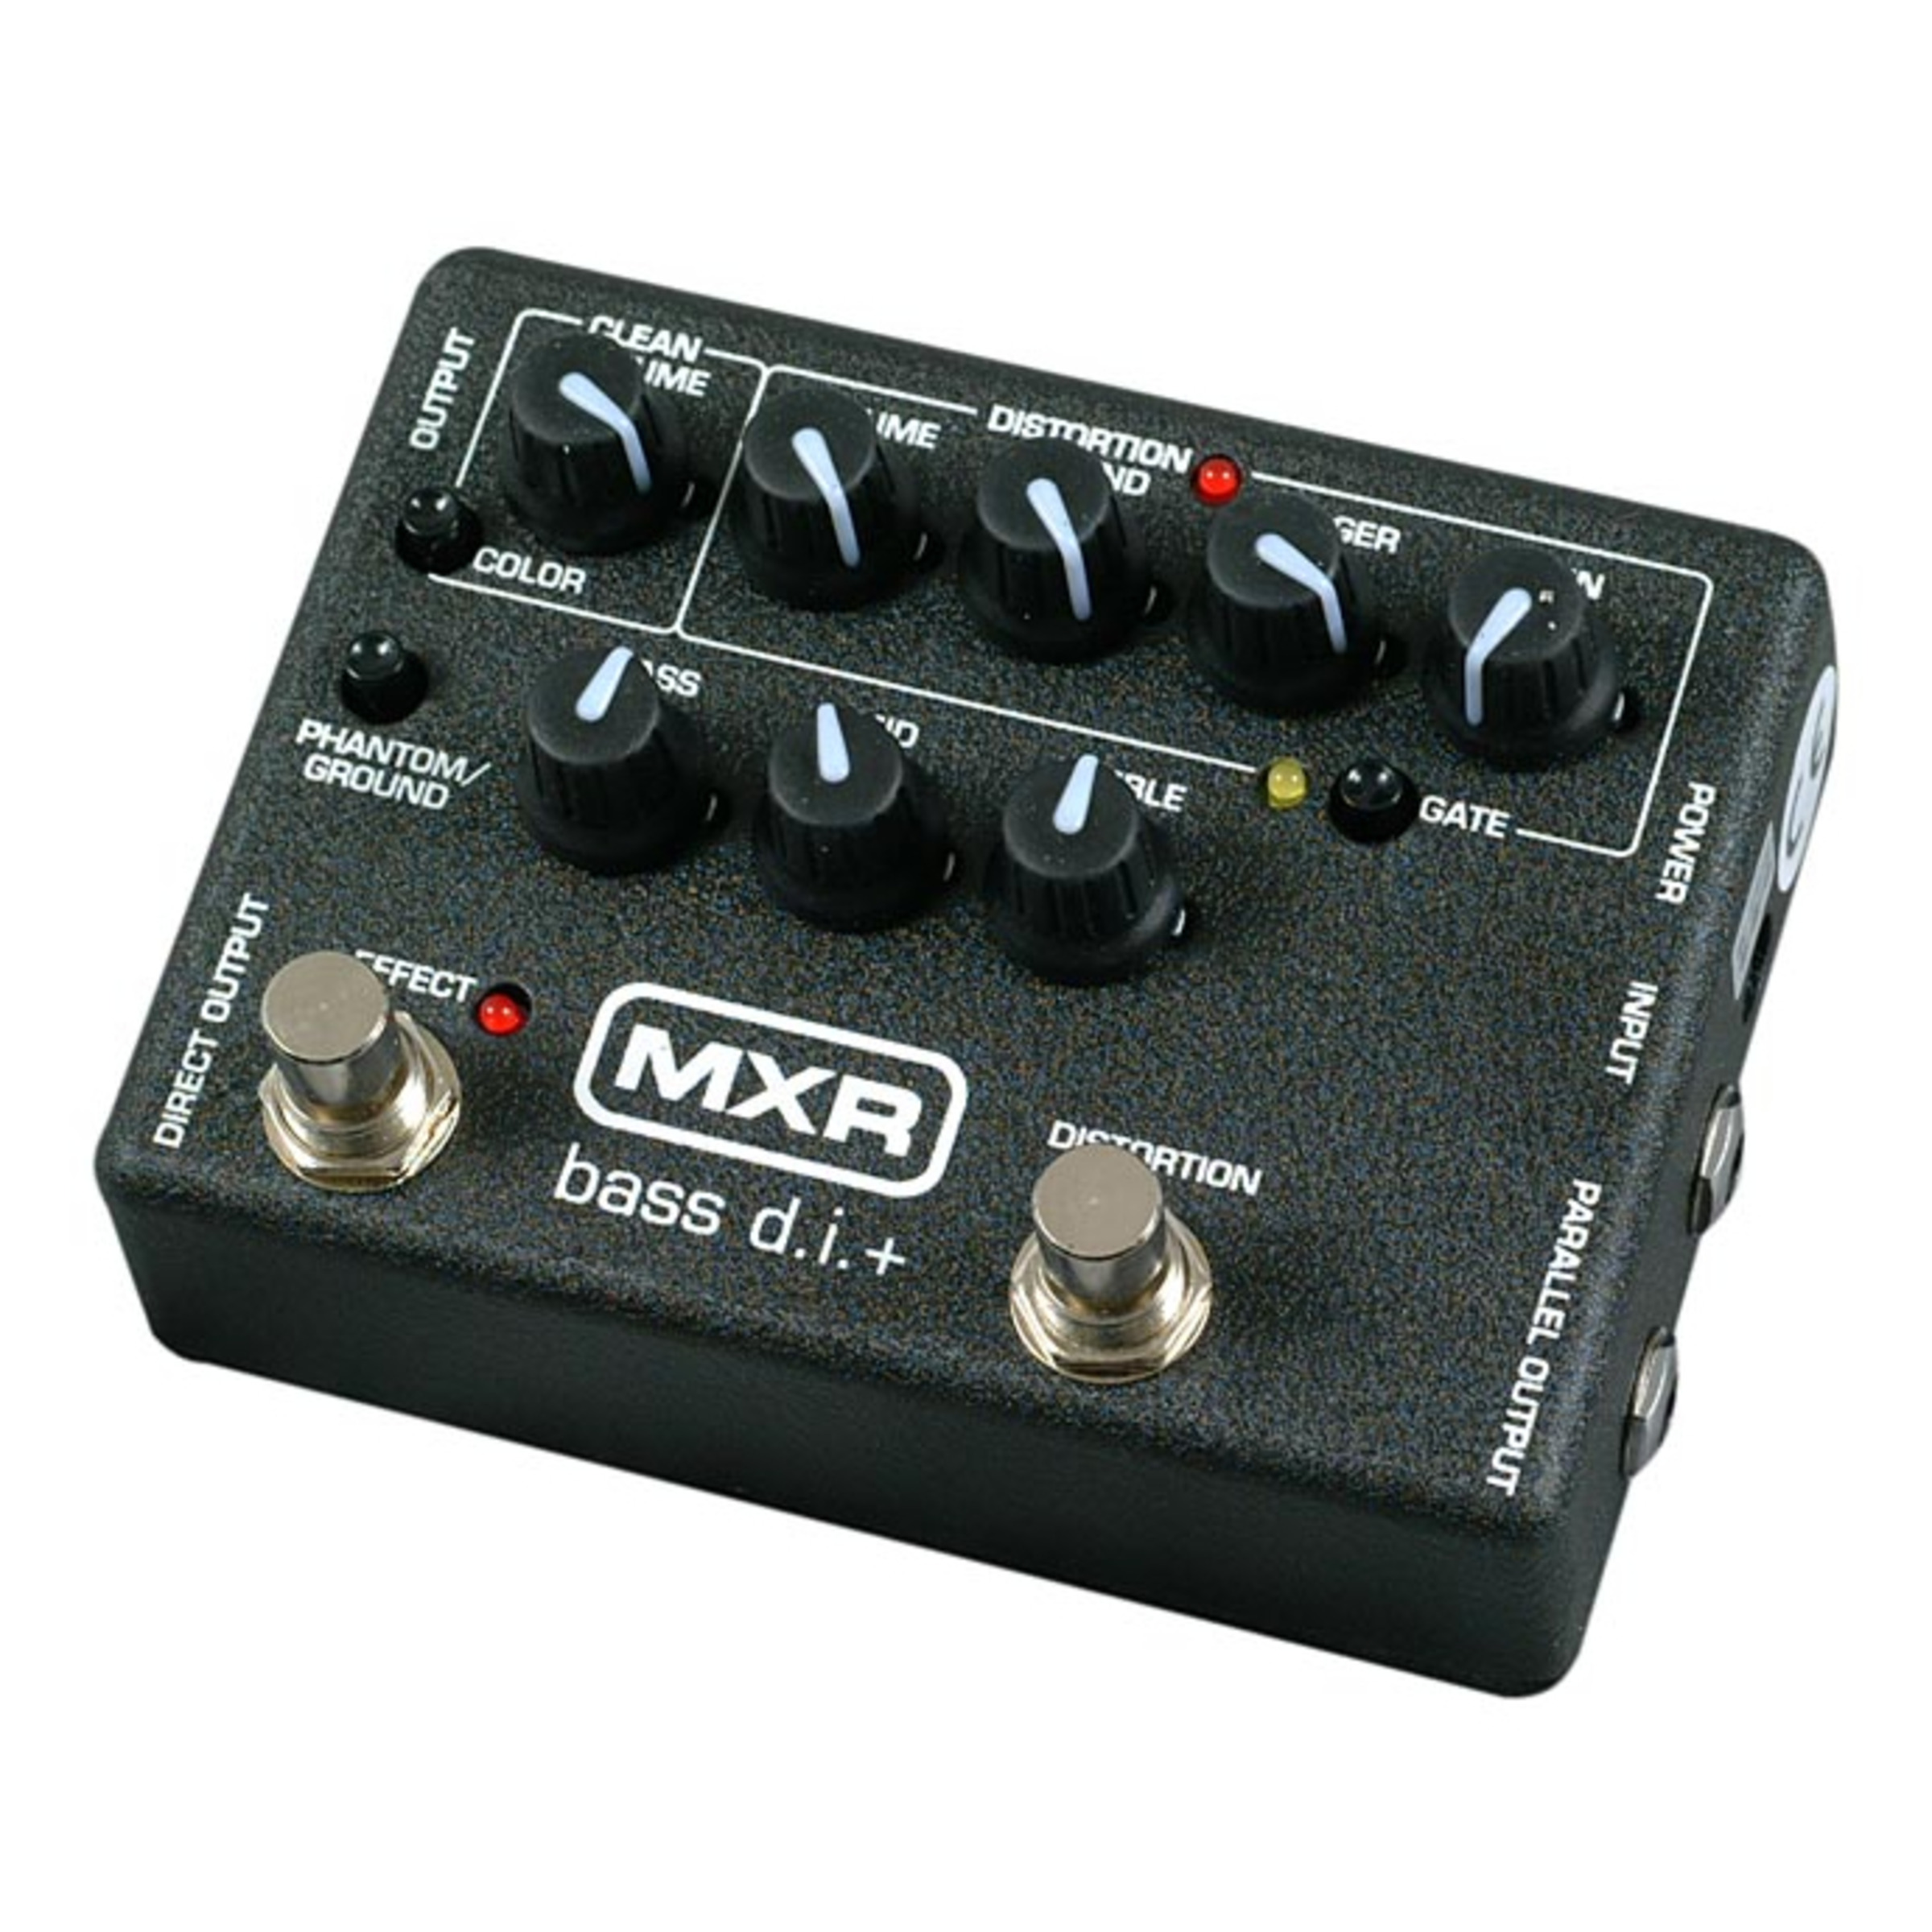 mxr m80 bass di distortion direct giggear. Black Bedroom Furniture Sets. Home Design Ideas